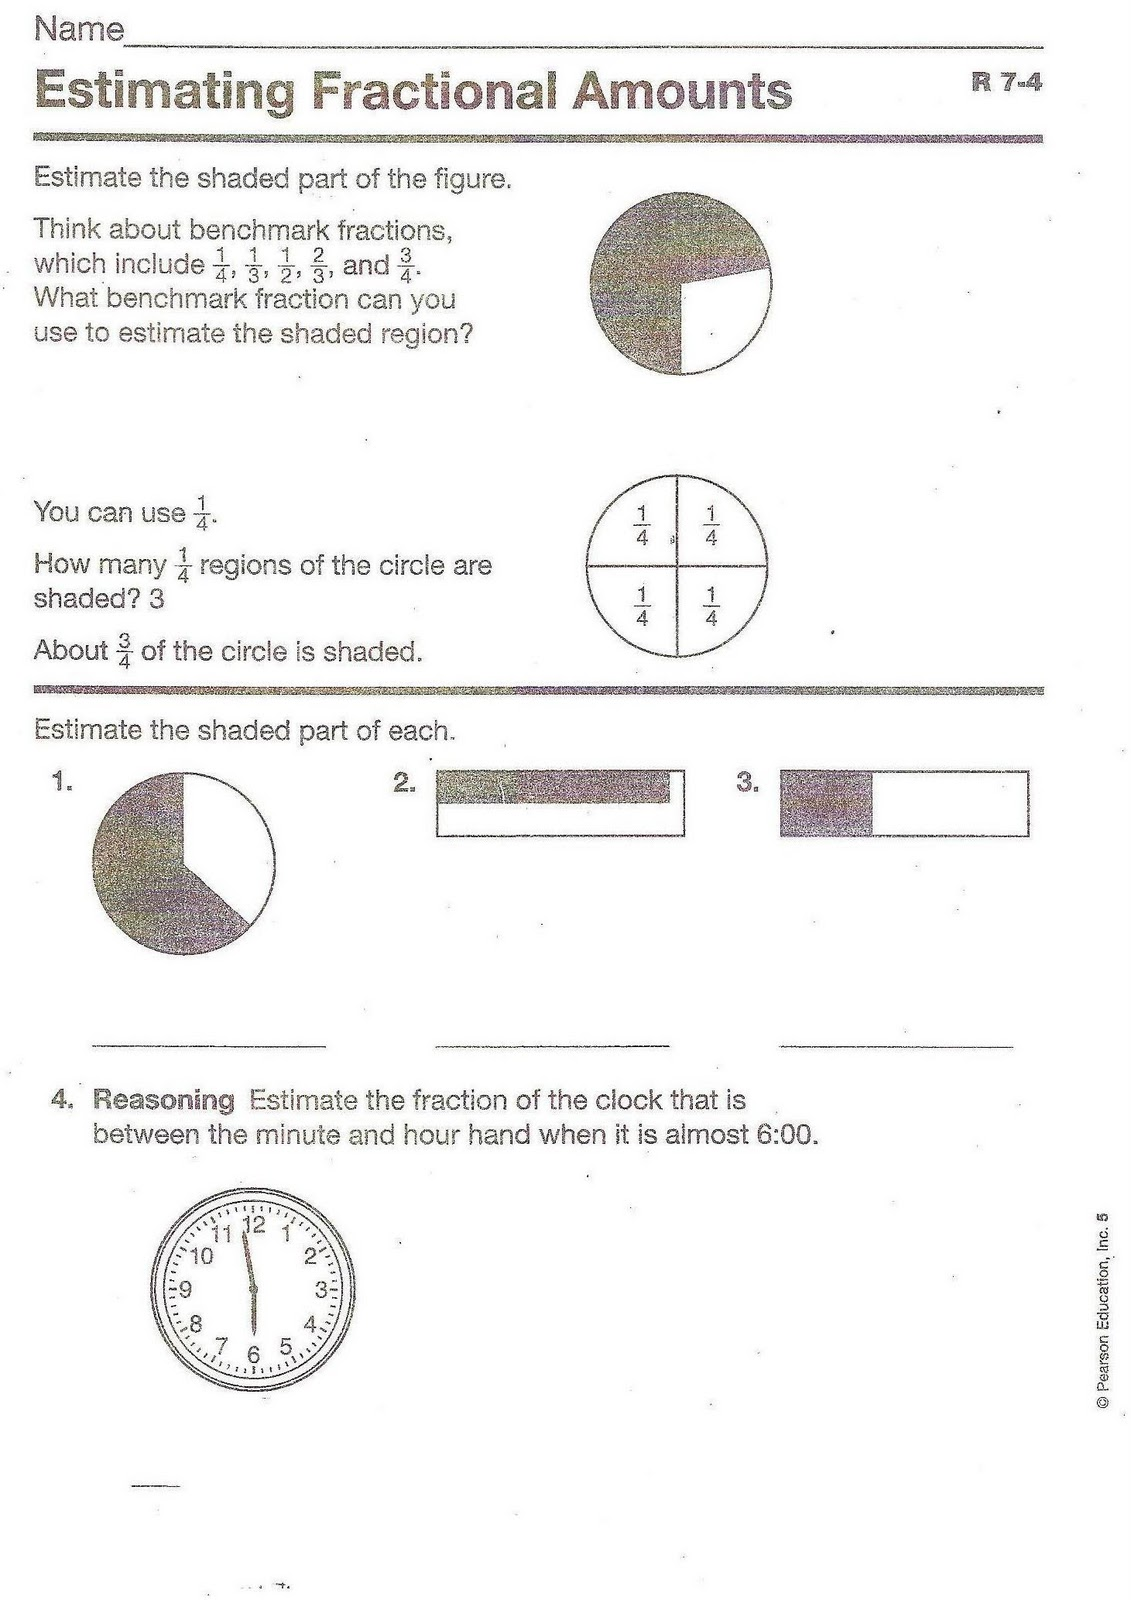 medium resolution of Estimating Fractional Amounts Worksheet Answers   Printable Worksheets and  Activities for Teachers